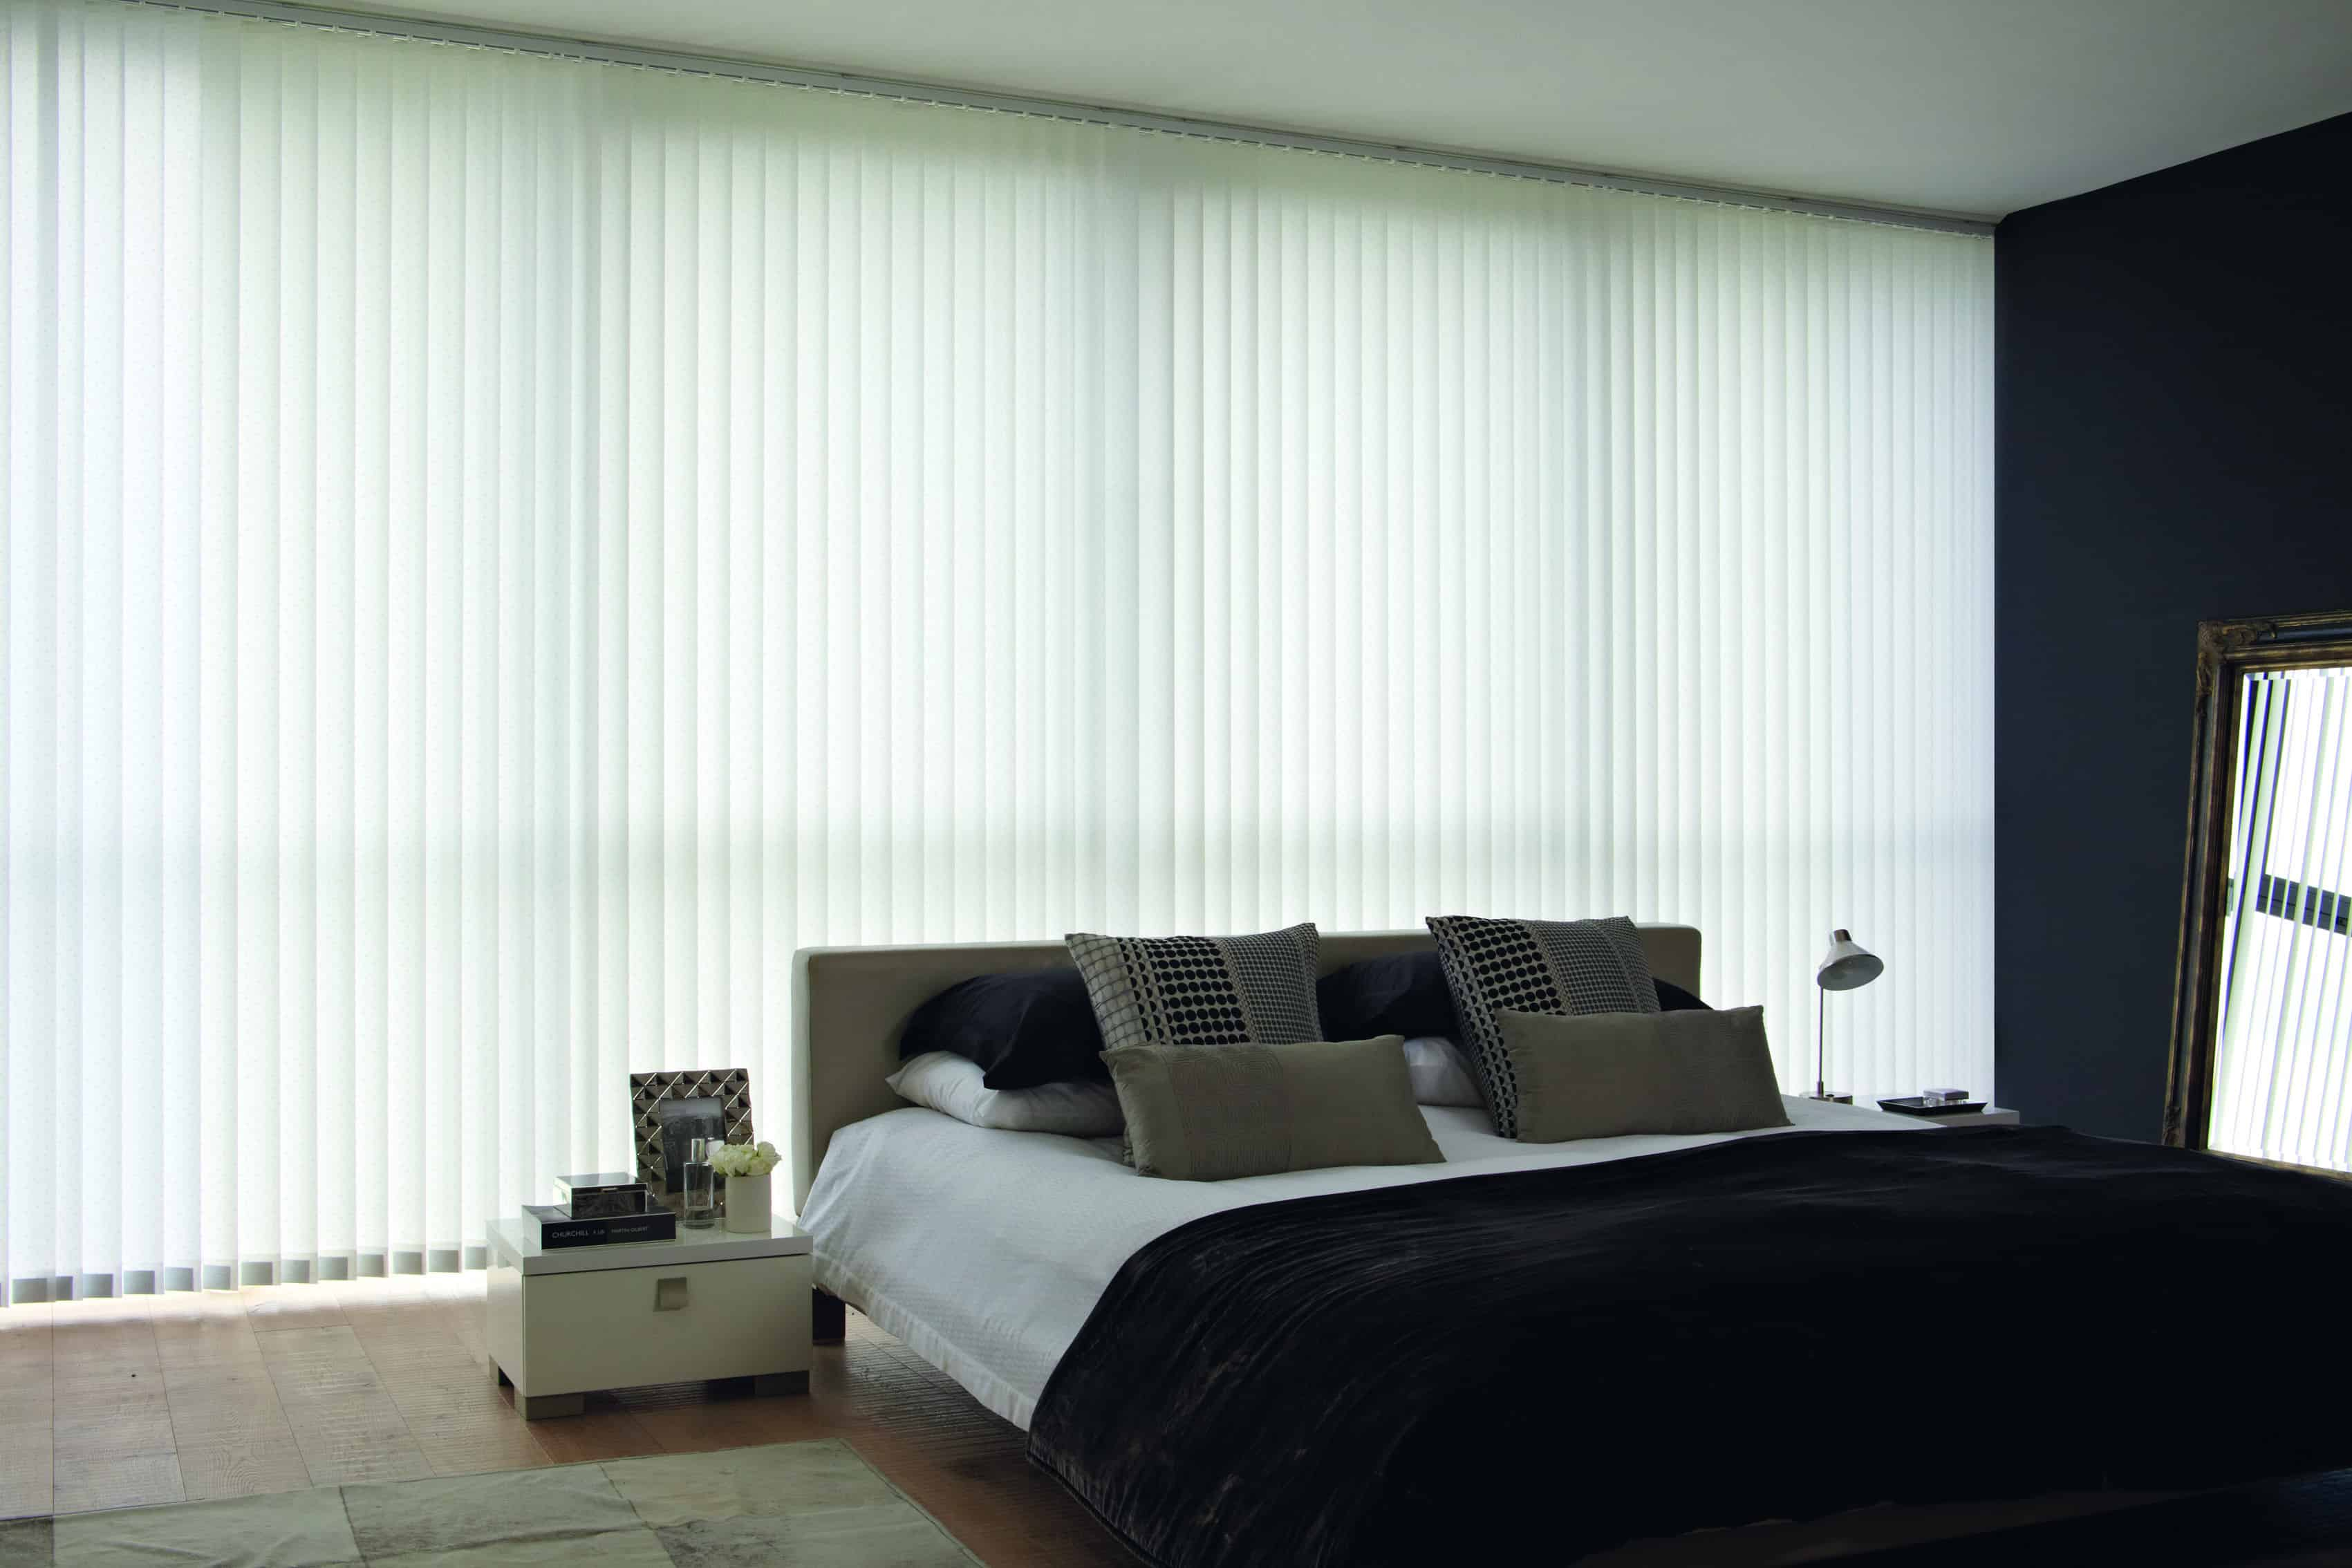 blinds treatments shades blind roman save blackout day next shade window